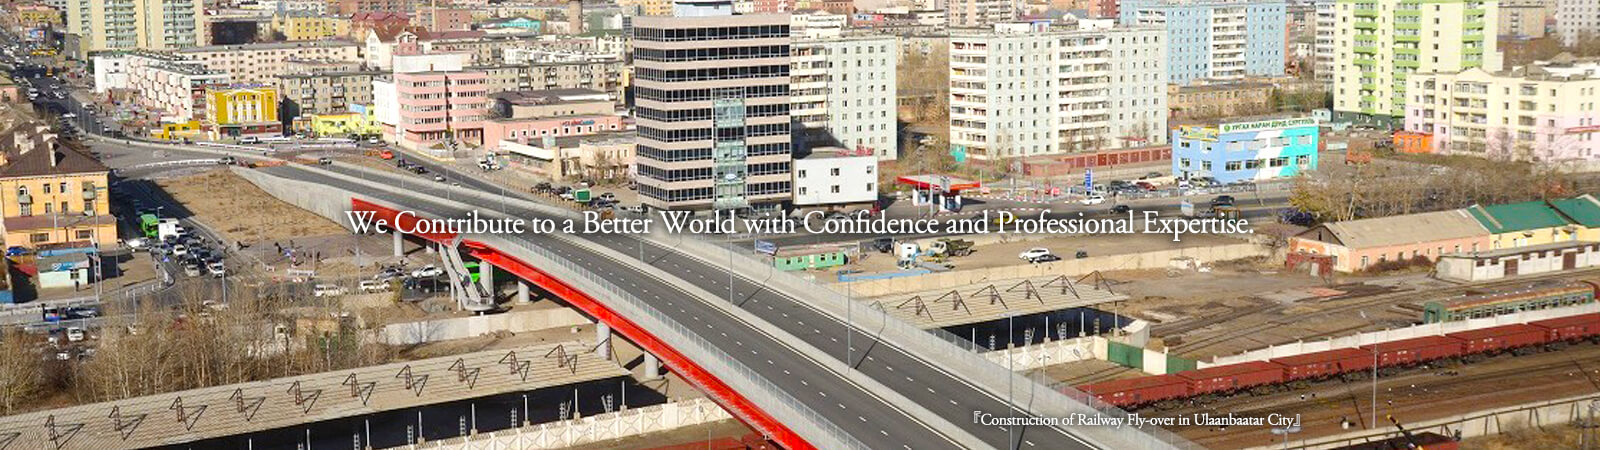 We Contribute to a Better World with Confidence and Professional Expertise.